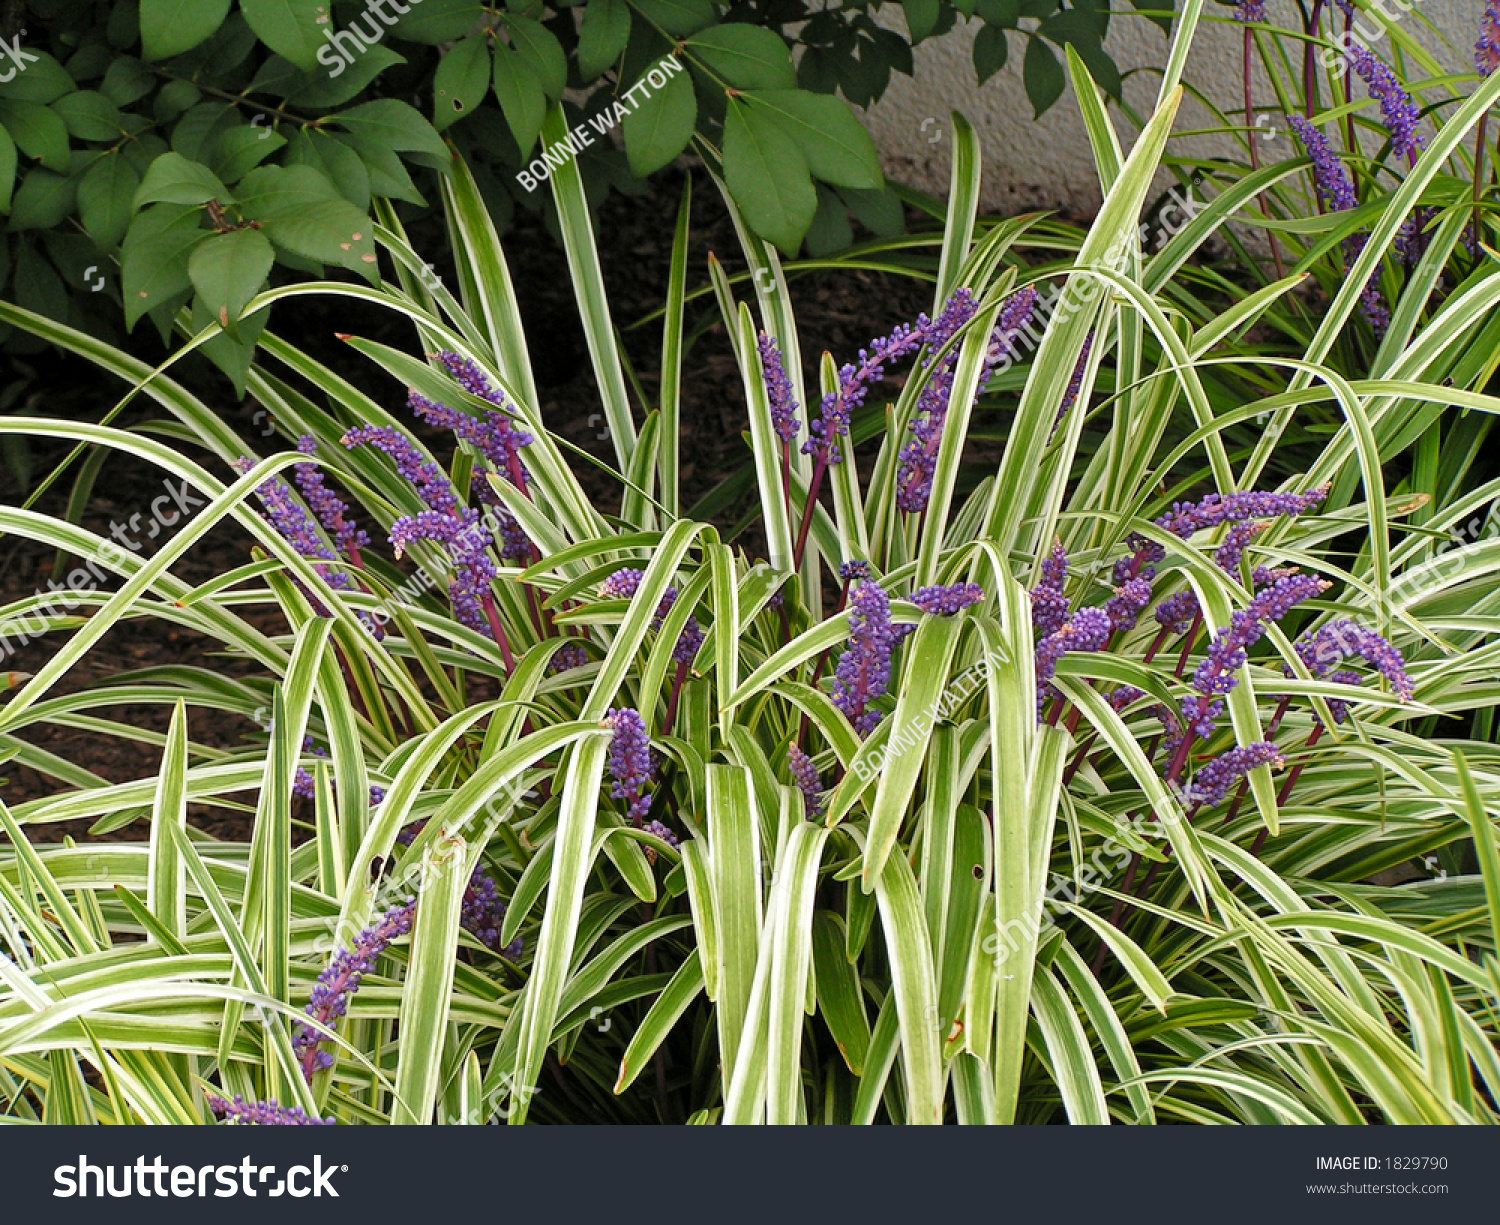 liriope a grass like perennial with variegated foliage